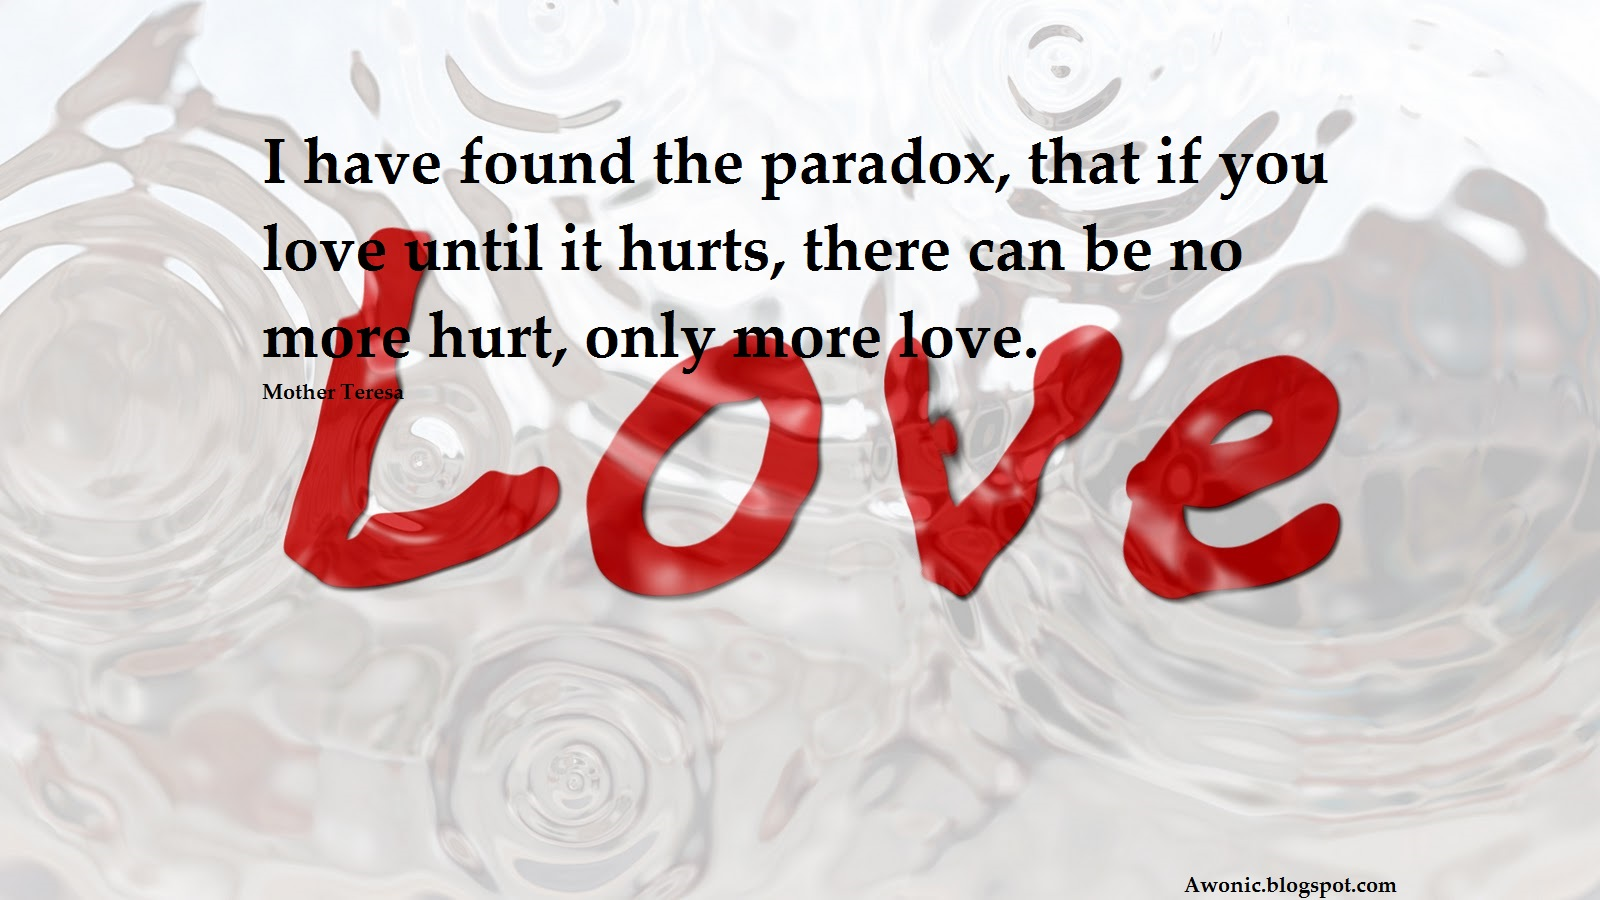 Love Hurts Quotes Mother Teresa Iconic Quotes About The Relation Between Love And